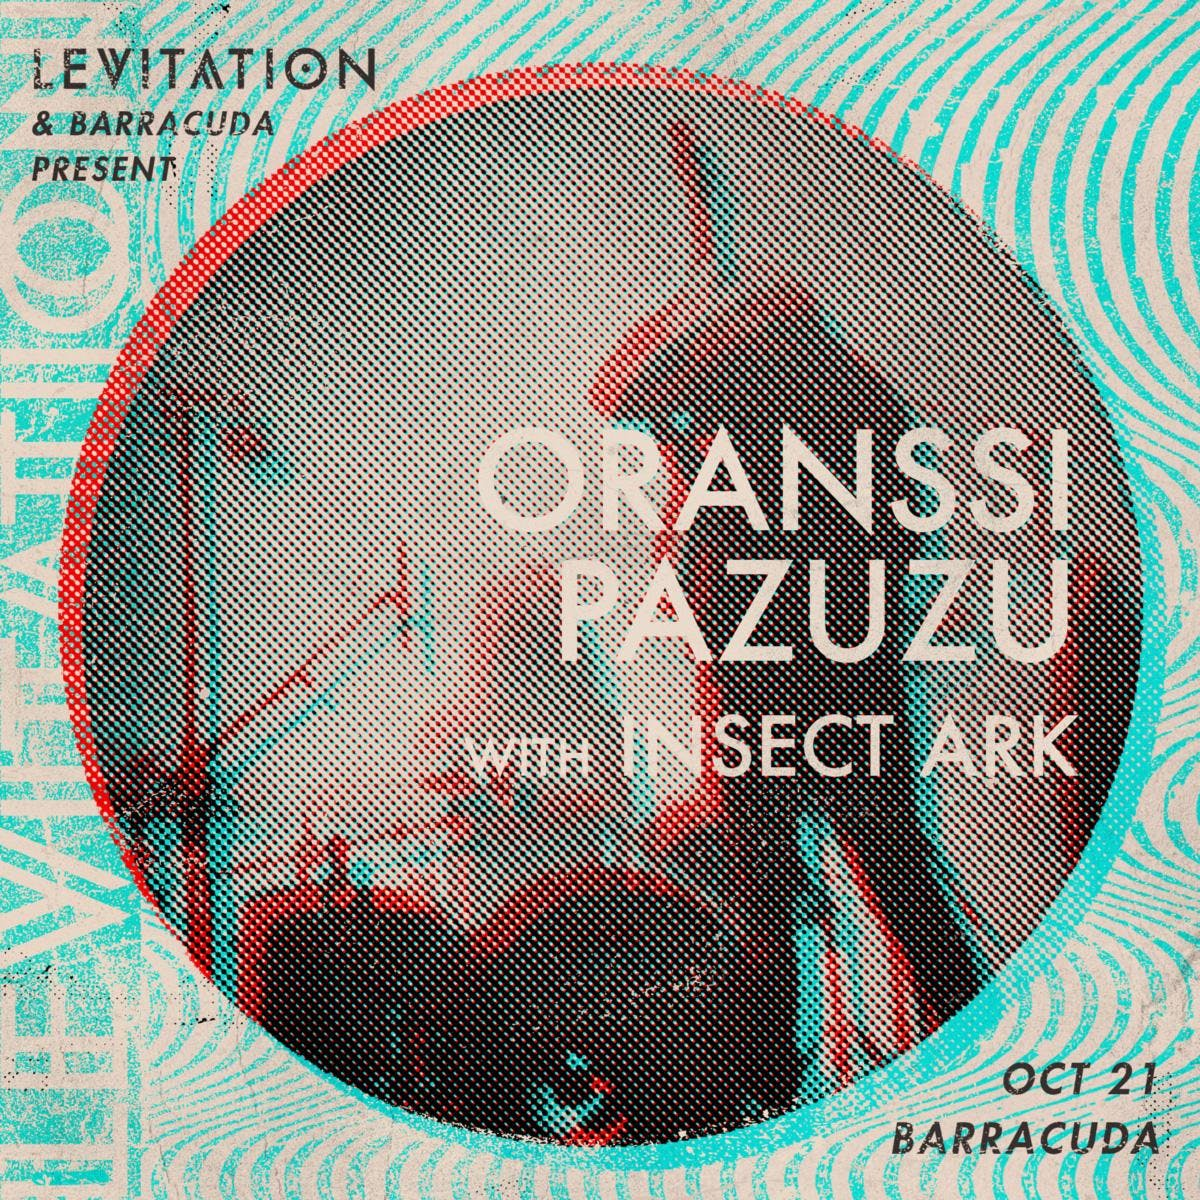 Oranssi Pazuzu,  Insect Ark, and Pinkish Black